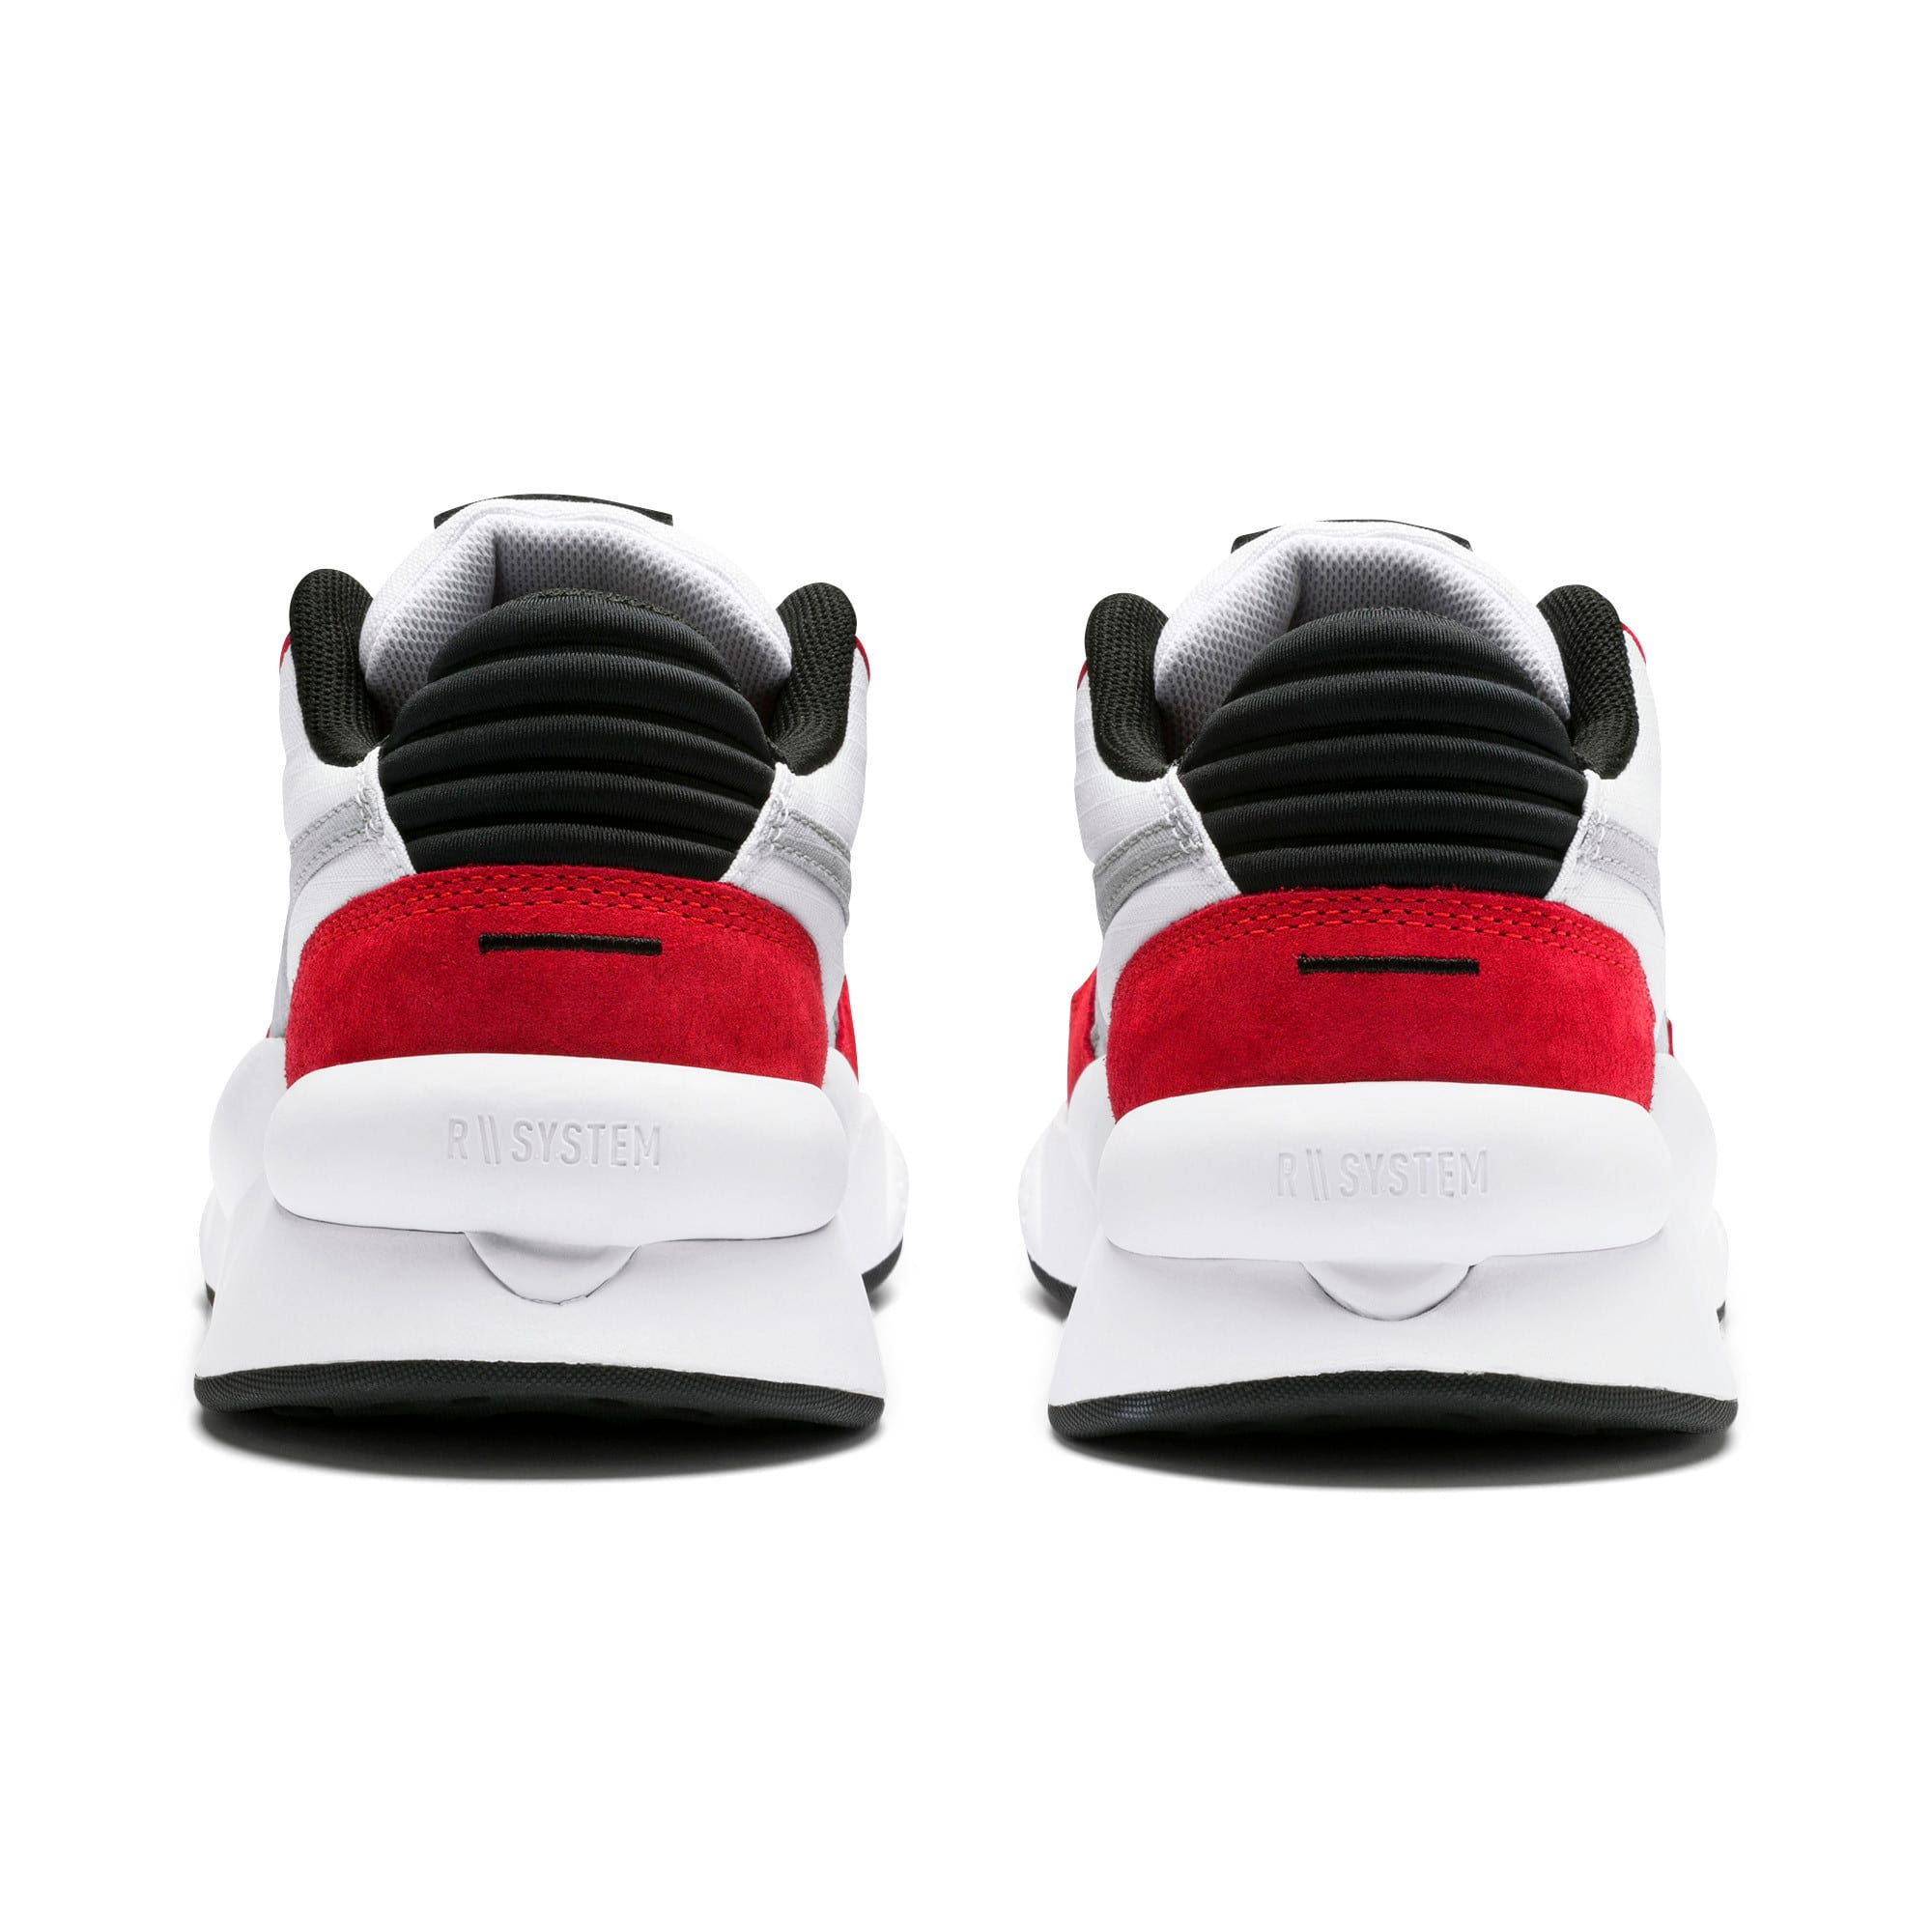 Thumbnail 3 of RS 9.8 Space Sneakers JR, Puma White-High Risk Red, medium